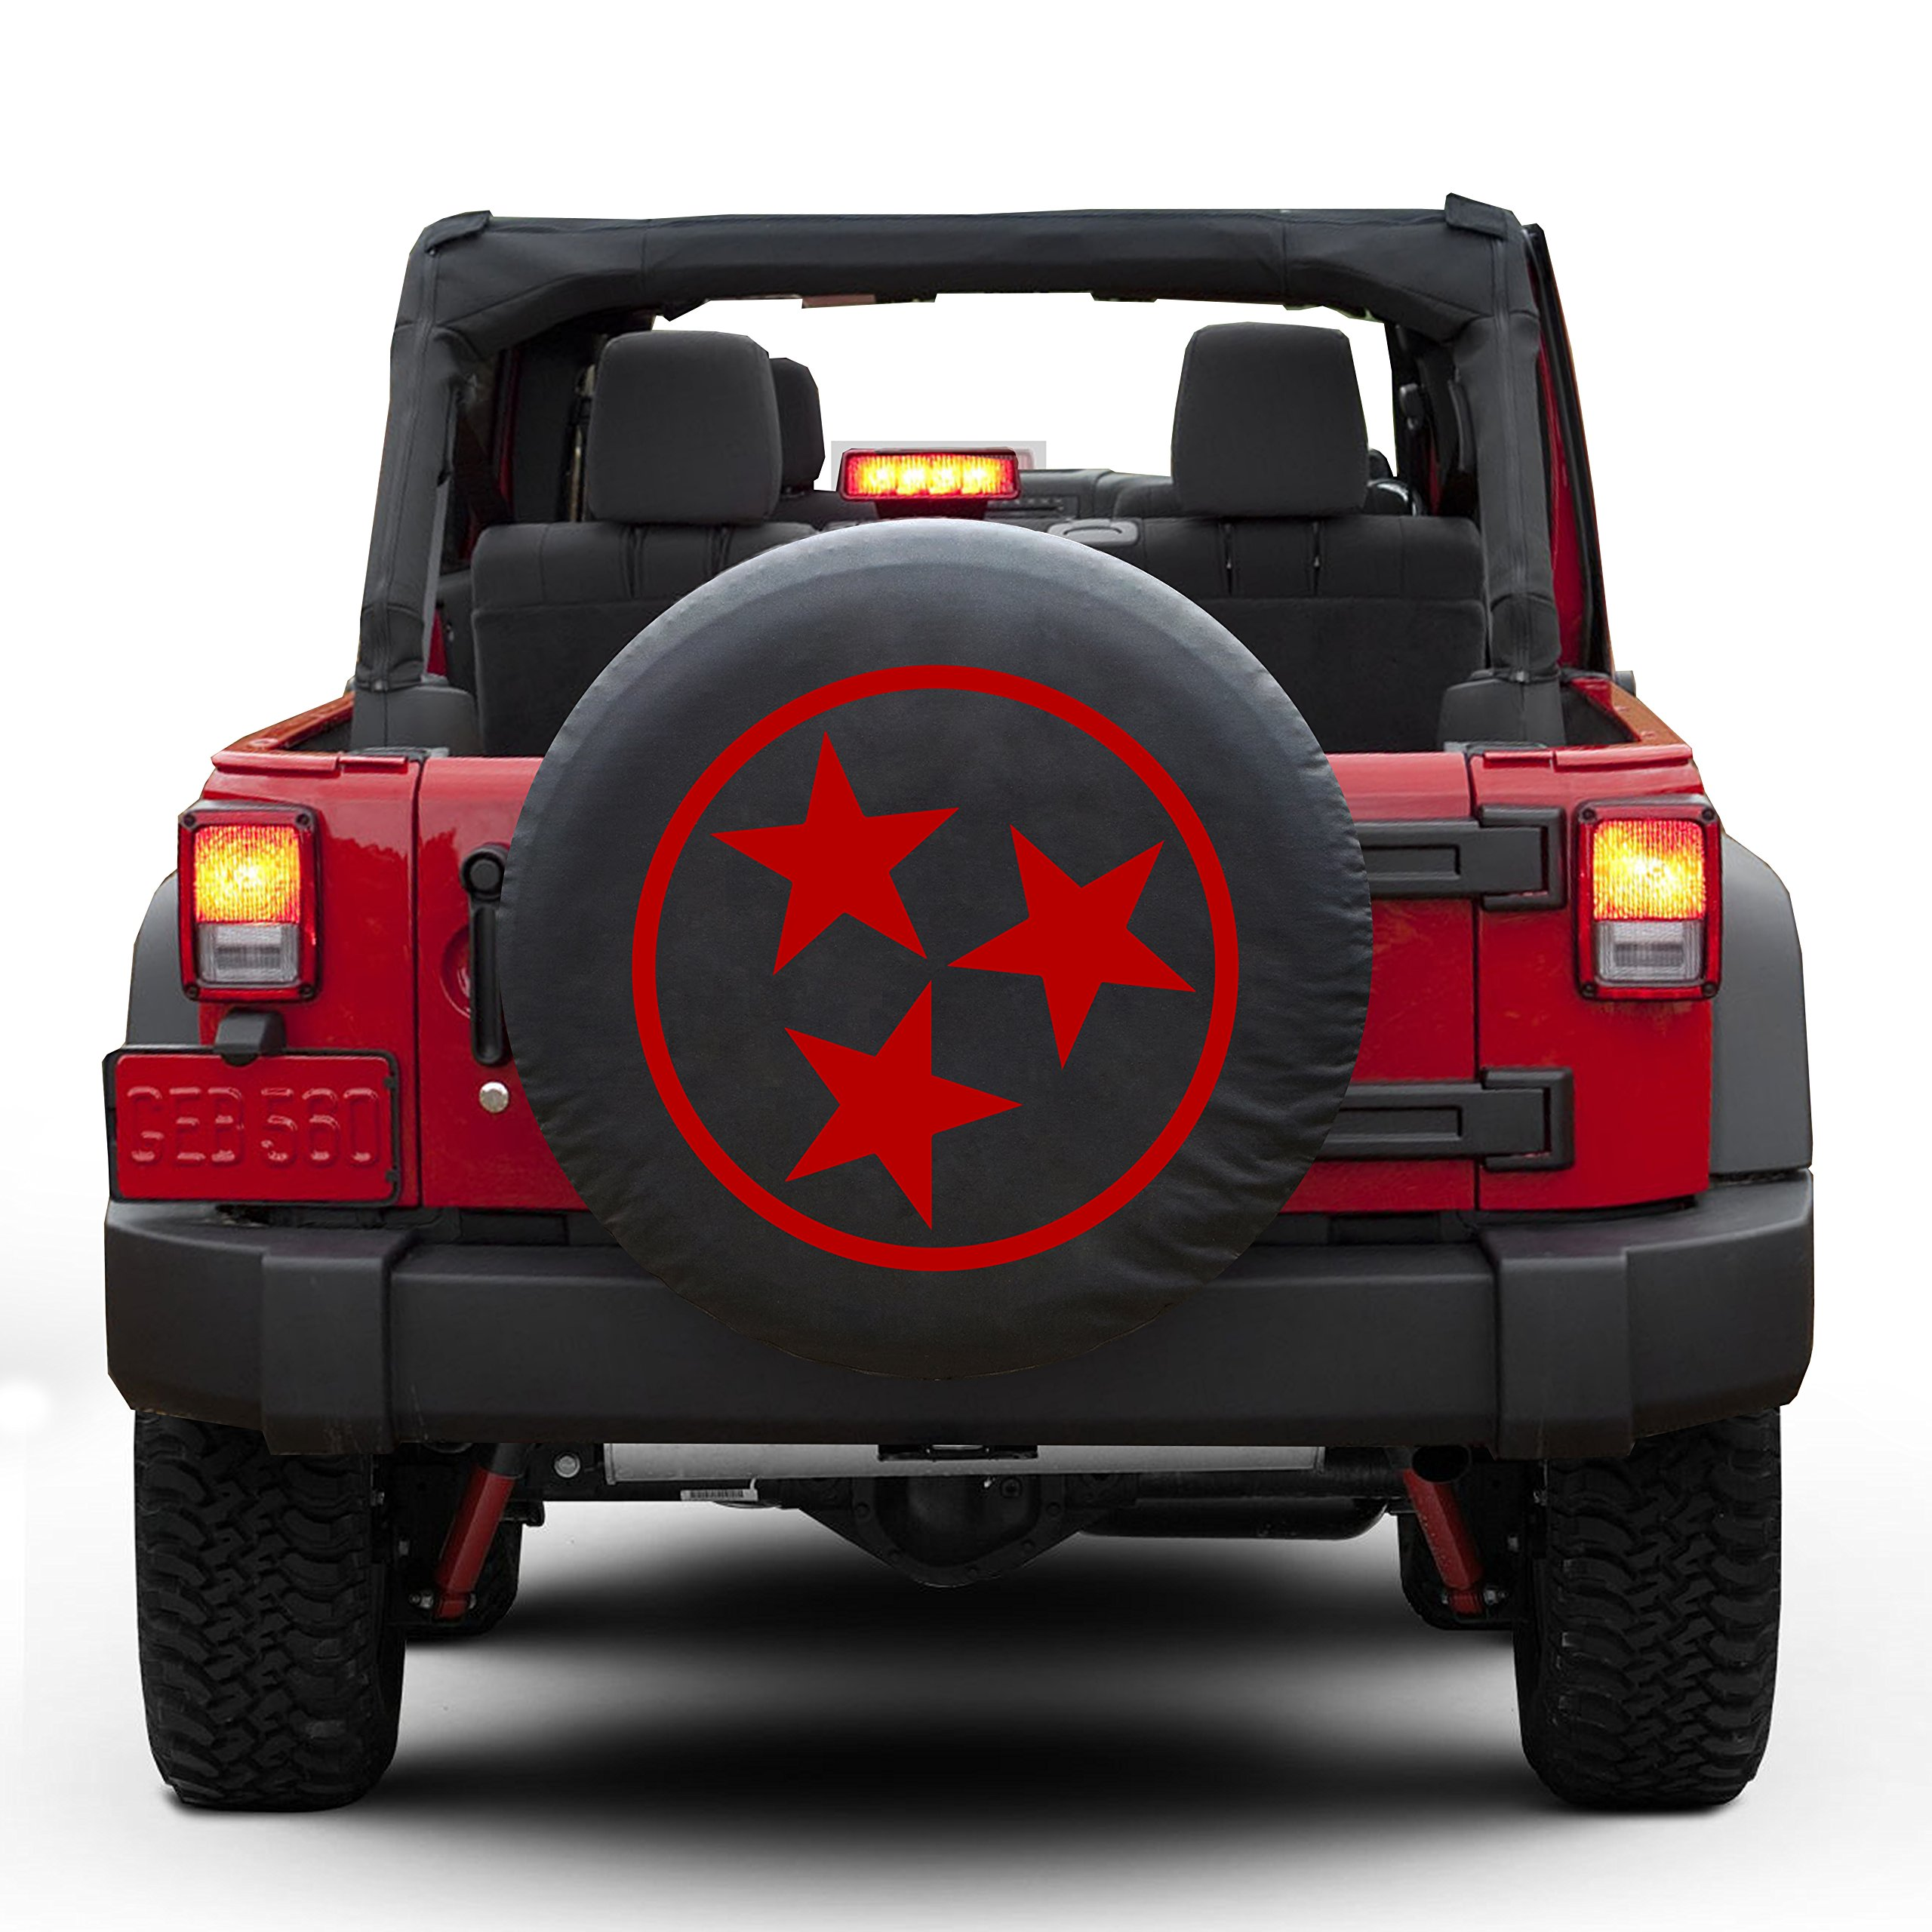 Tennessee tri star Tire Cover Fits 30''-32'' Tire (RED)